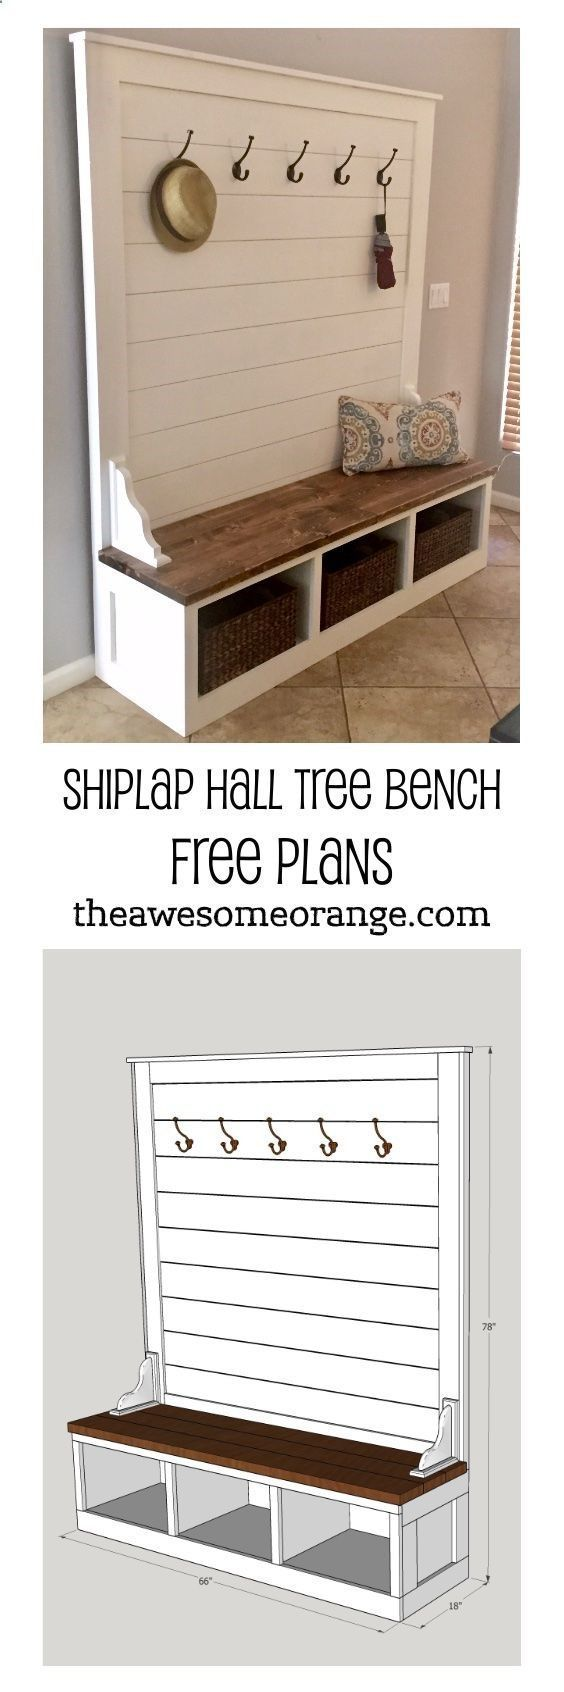 Plans Of Woodworking Diy Projects Free Plans From Www